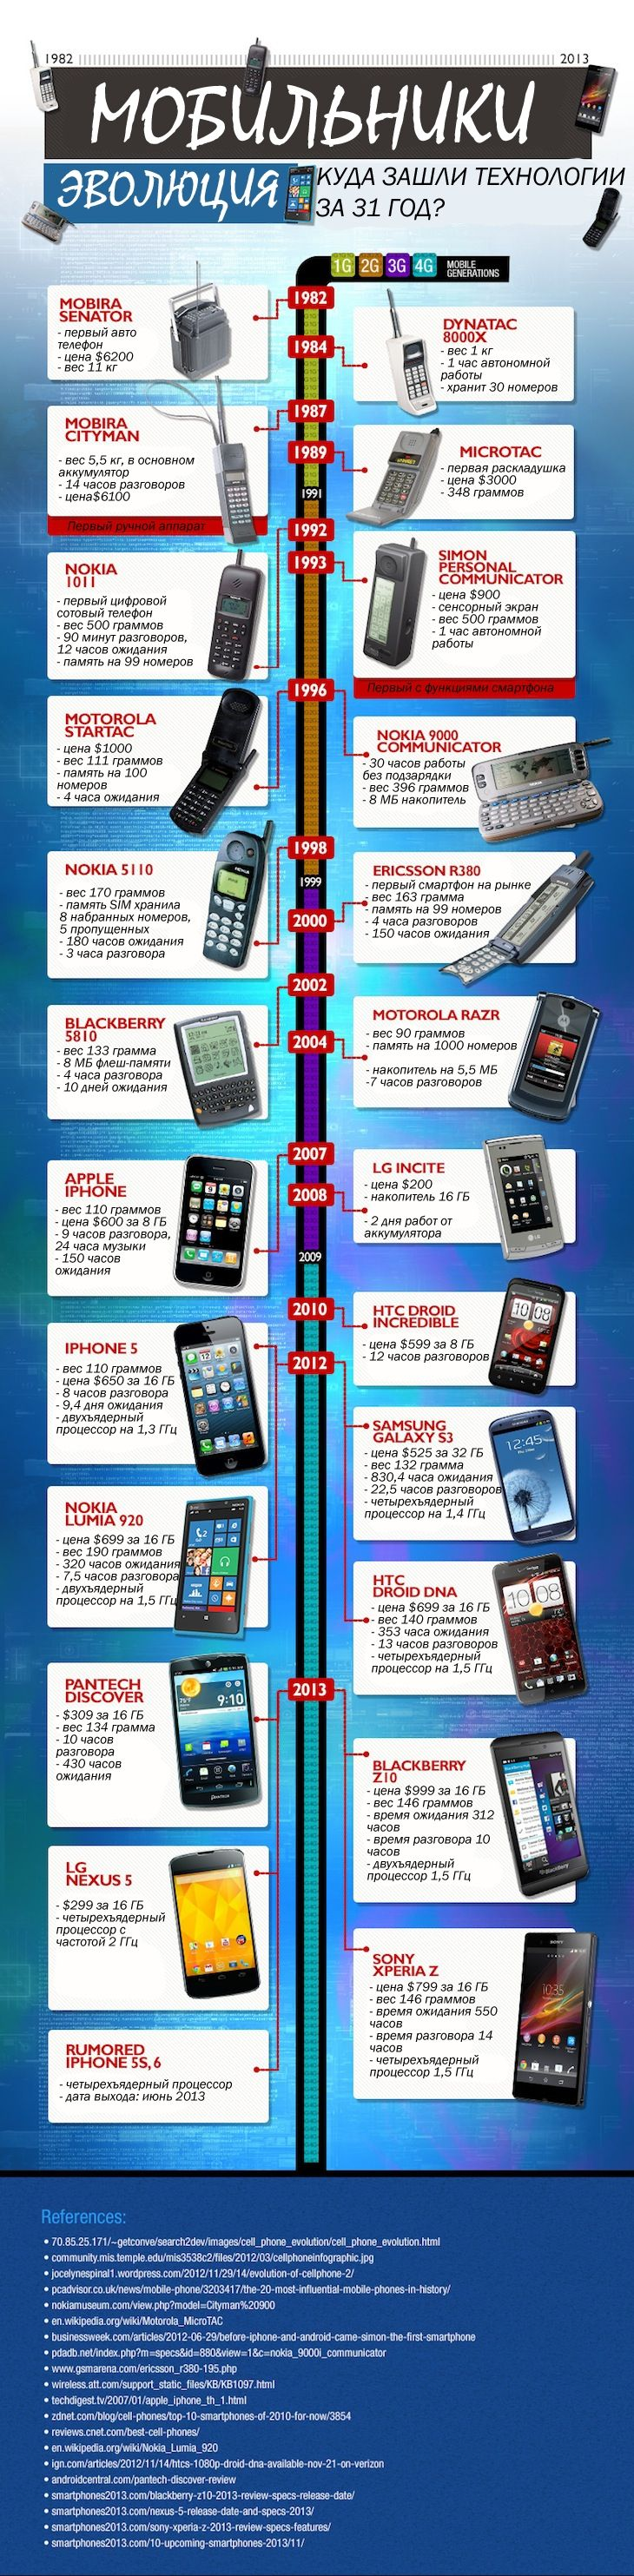 evolution of cell phone technology